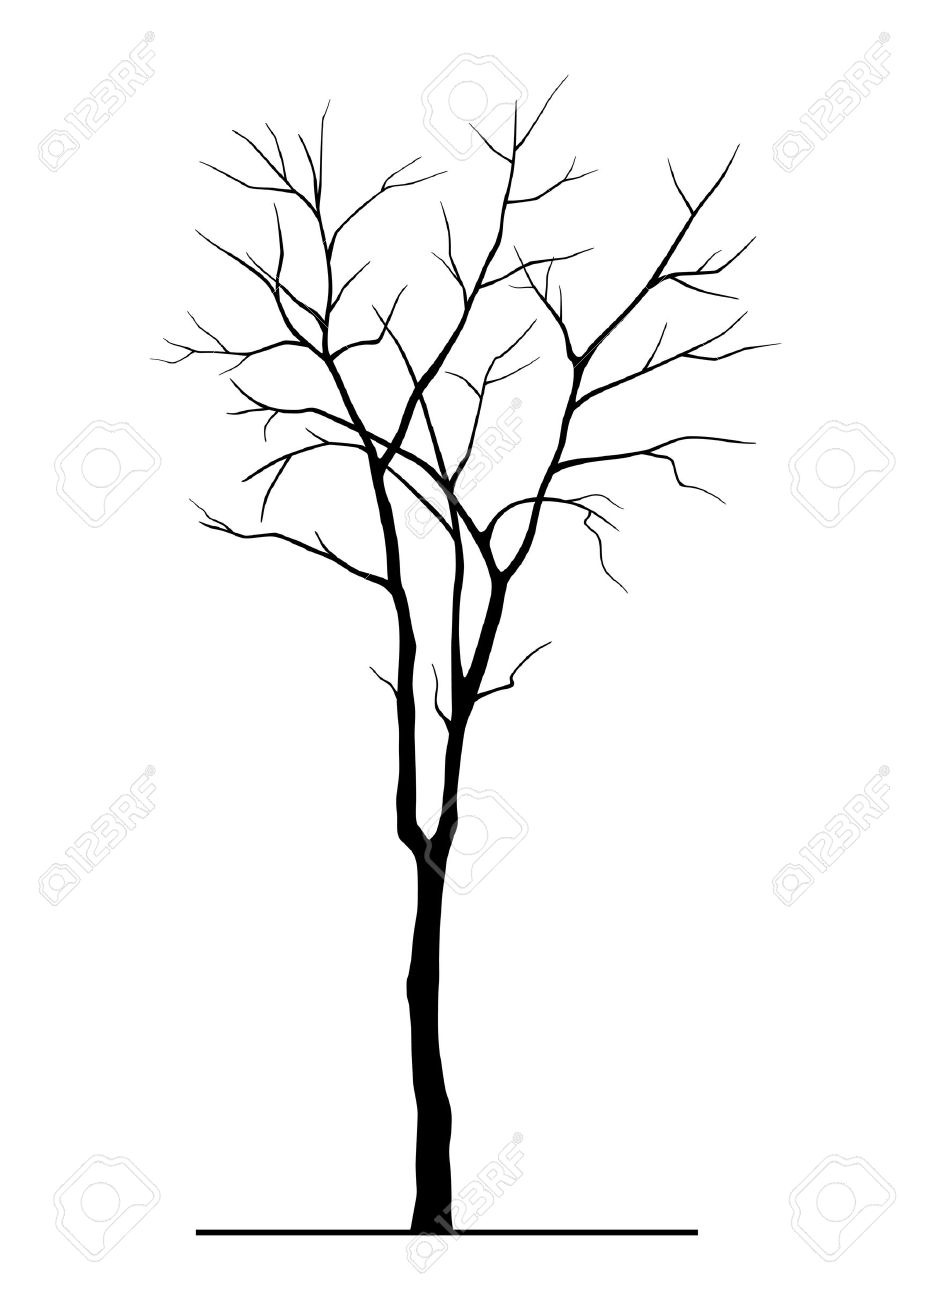 931x1300 Tree Silhouette Without Leaves Royalty Free Cliparts, Vectors,